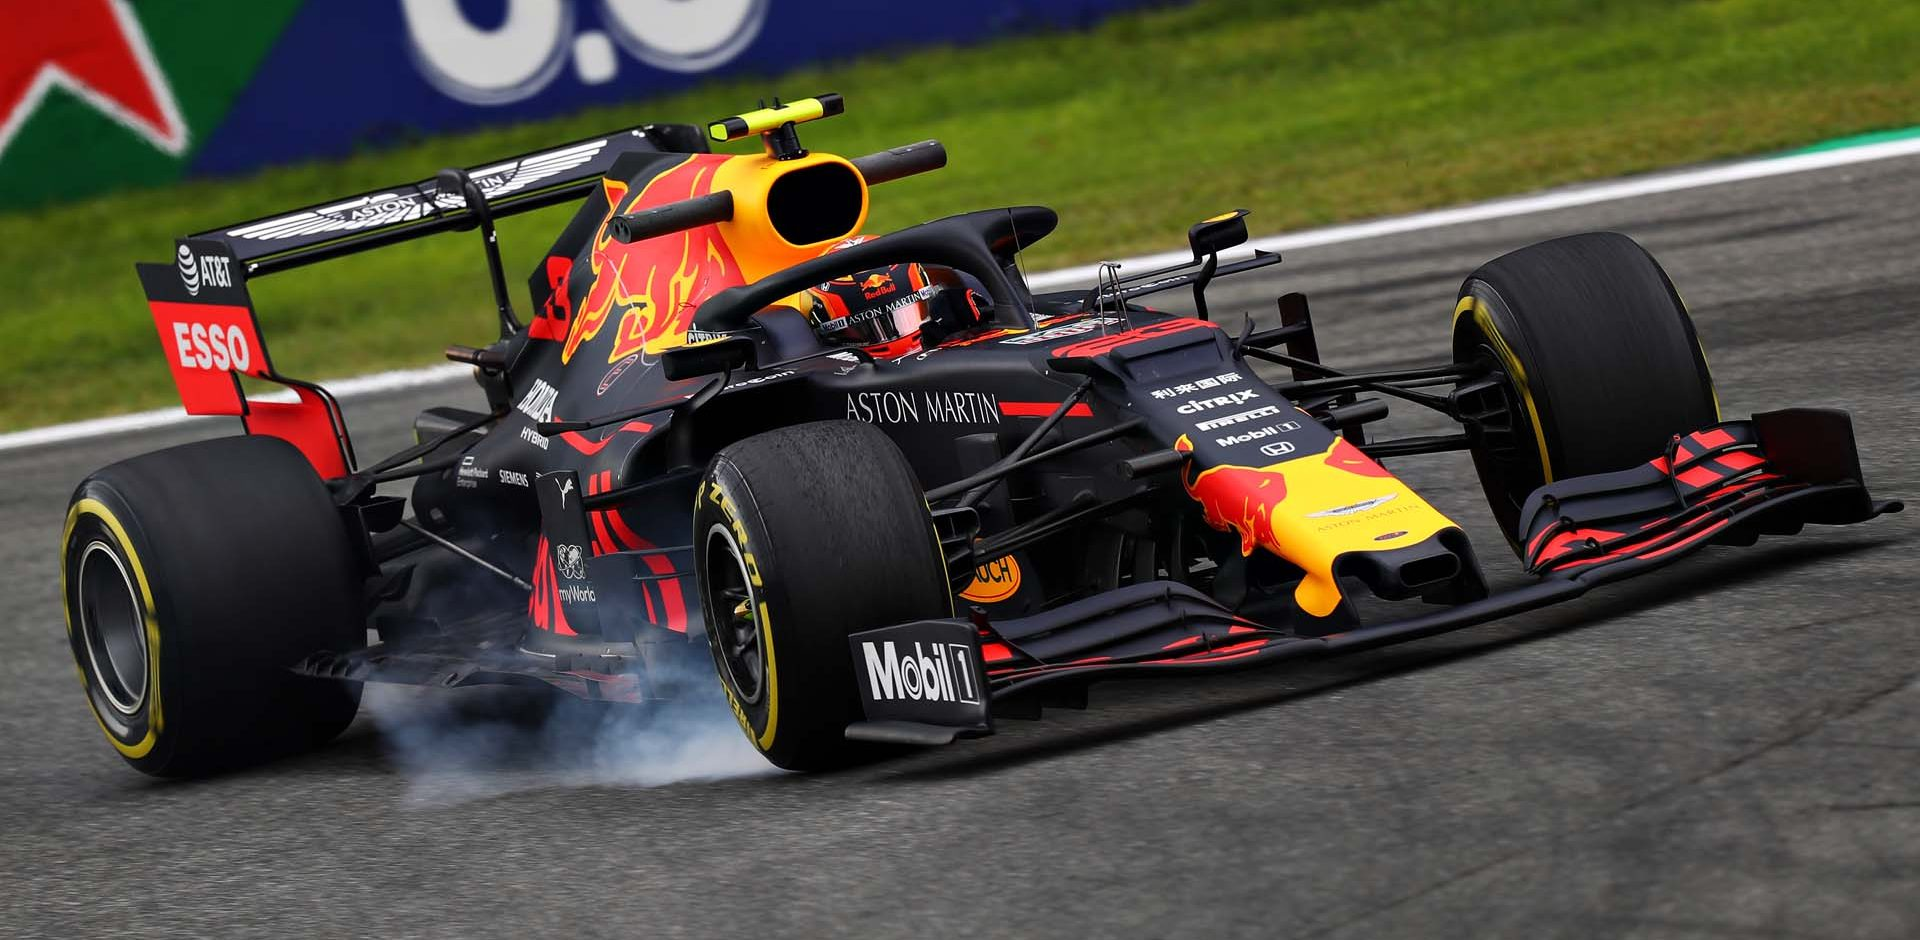 MONZA, ITALY - SEPTEMBER 06: Alexander Albon of Thailand driving the (23) Aston Martin Red Bull Racing RB15 locks a wheel under braking during practice for the F1 Grand Prix of Italy at Autodromo di Monza on September 06, 2019 in Monza, Italy. (Photo by Lars Baron/Getty Images) // Getty Images / Red Bull Content Pool  // AP-21G5FBSZ52111 // Usage for editorial use only //